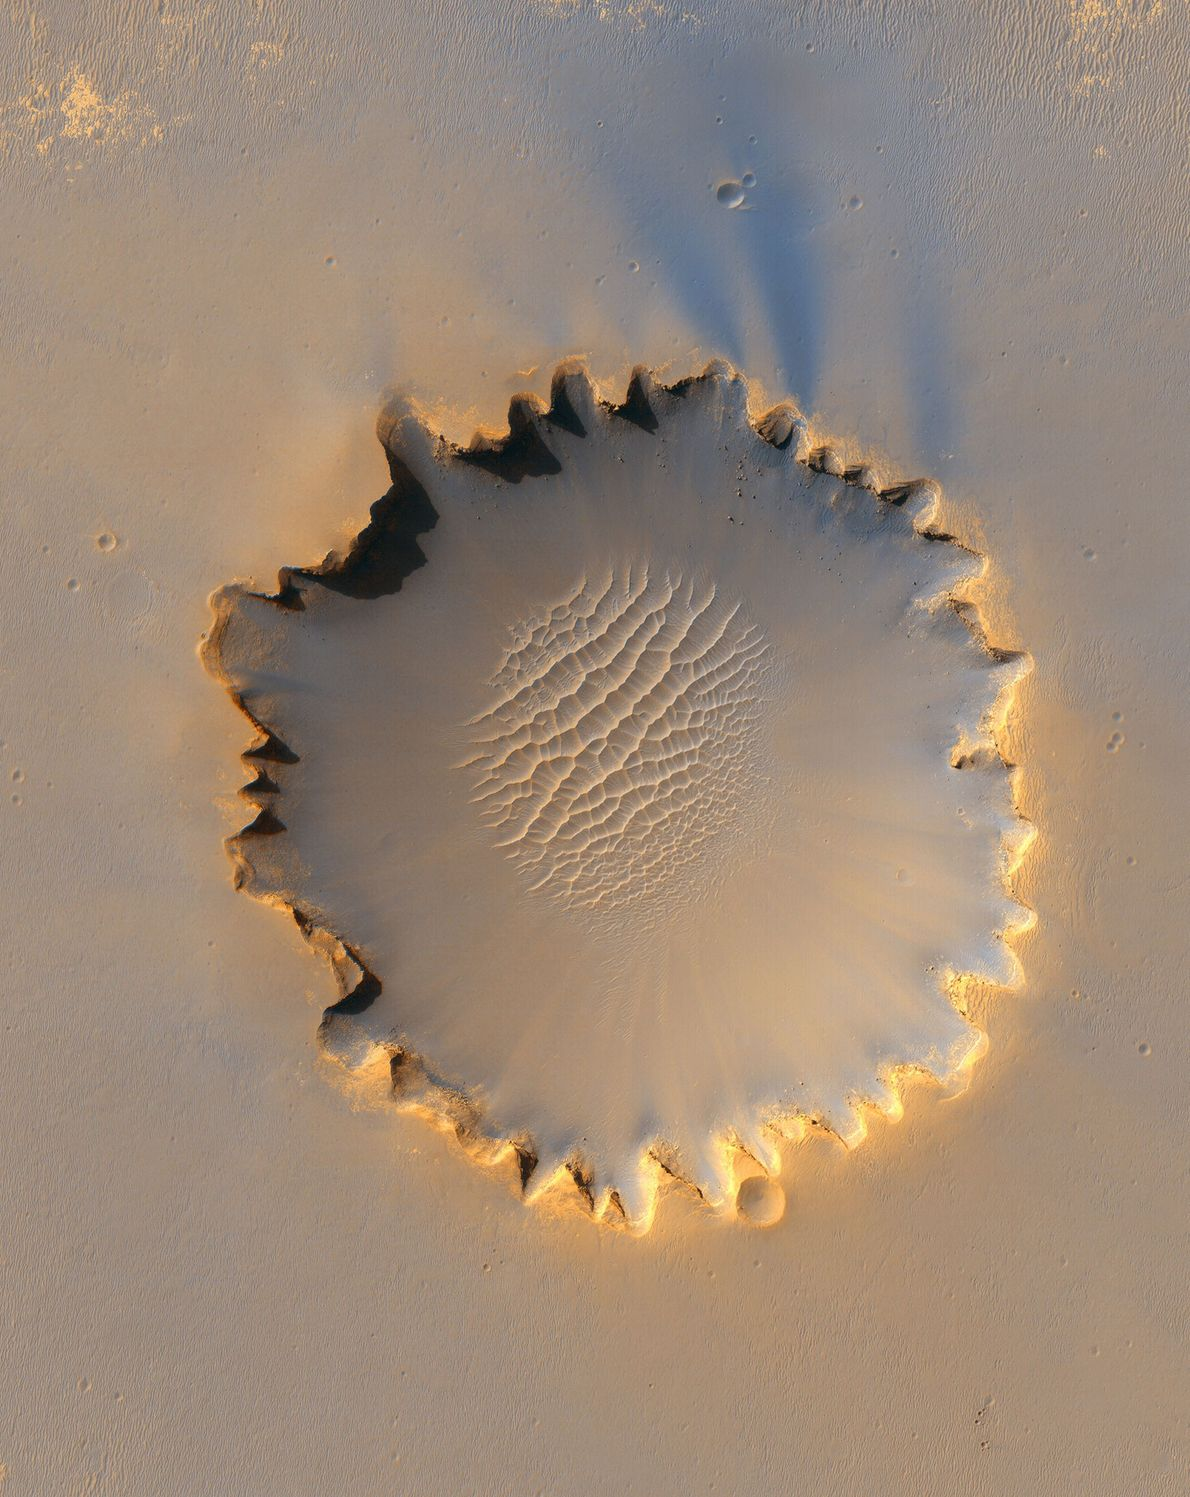 Victoria Crater has a distinctive 'scalloped' shape to its rim, caused by erosion and downhill movement ...